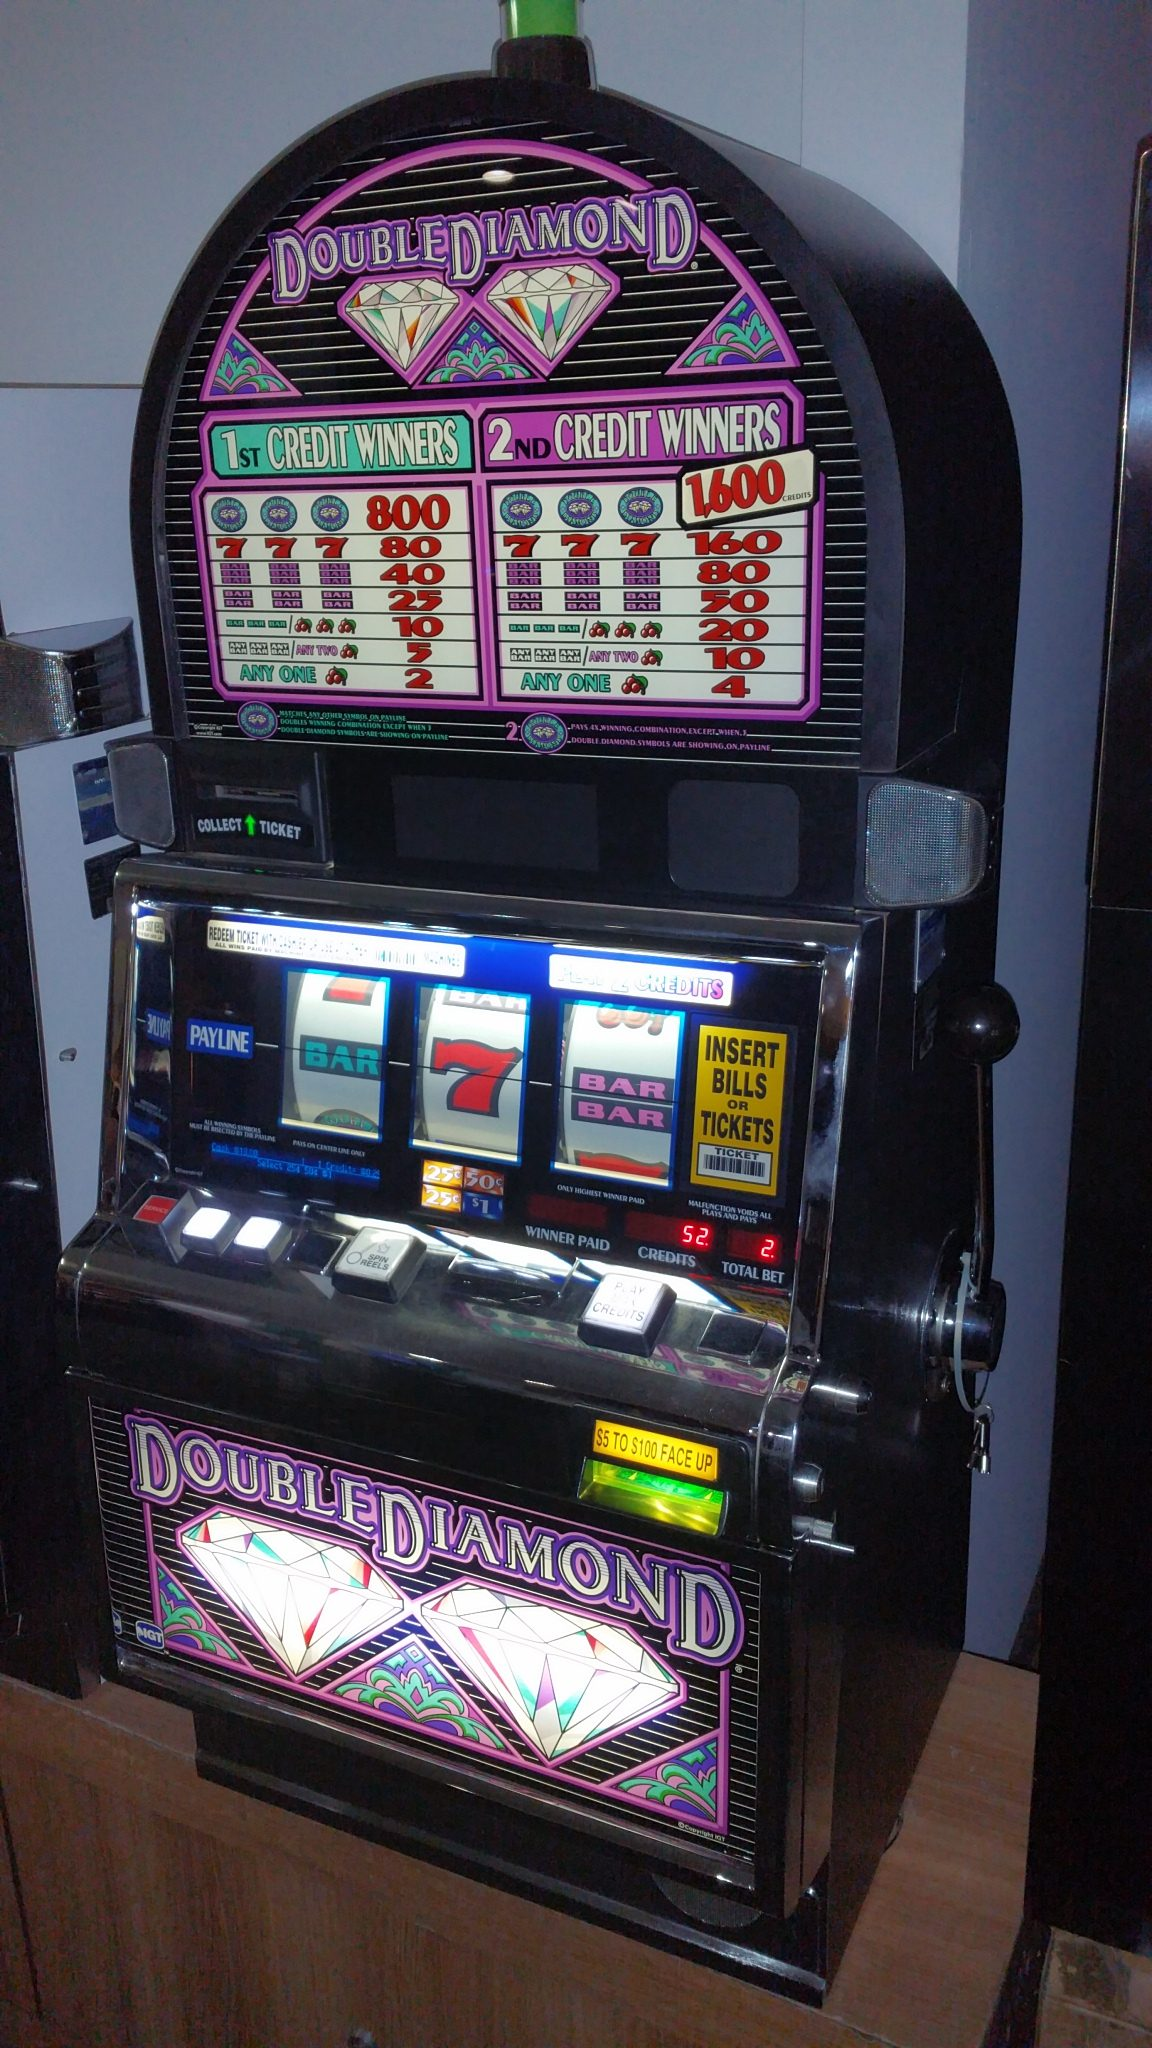 Vegas slots online igt double diamond david arnold casino royale